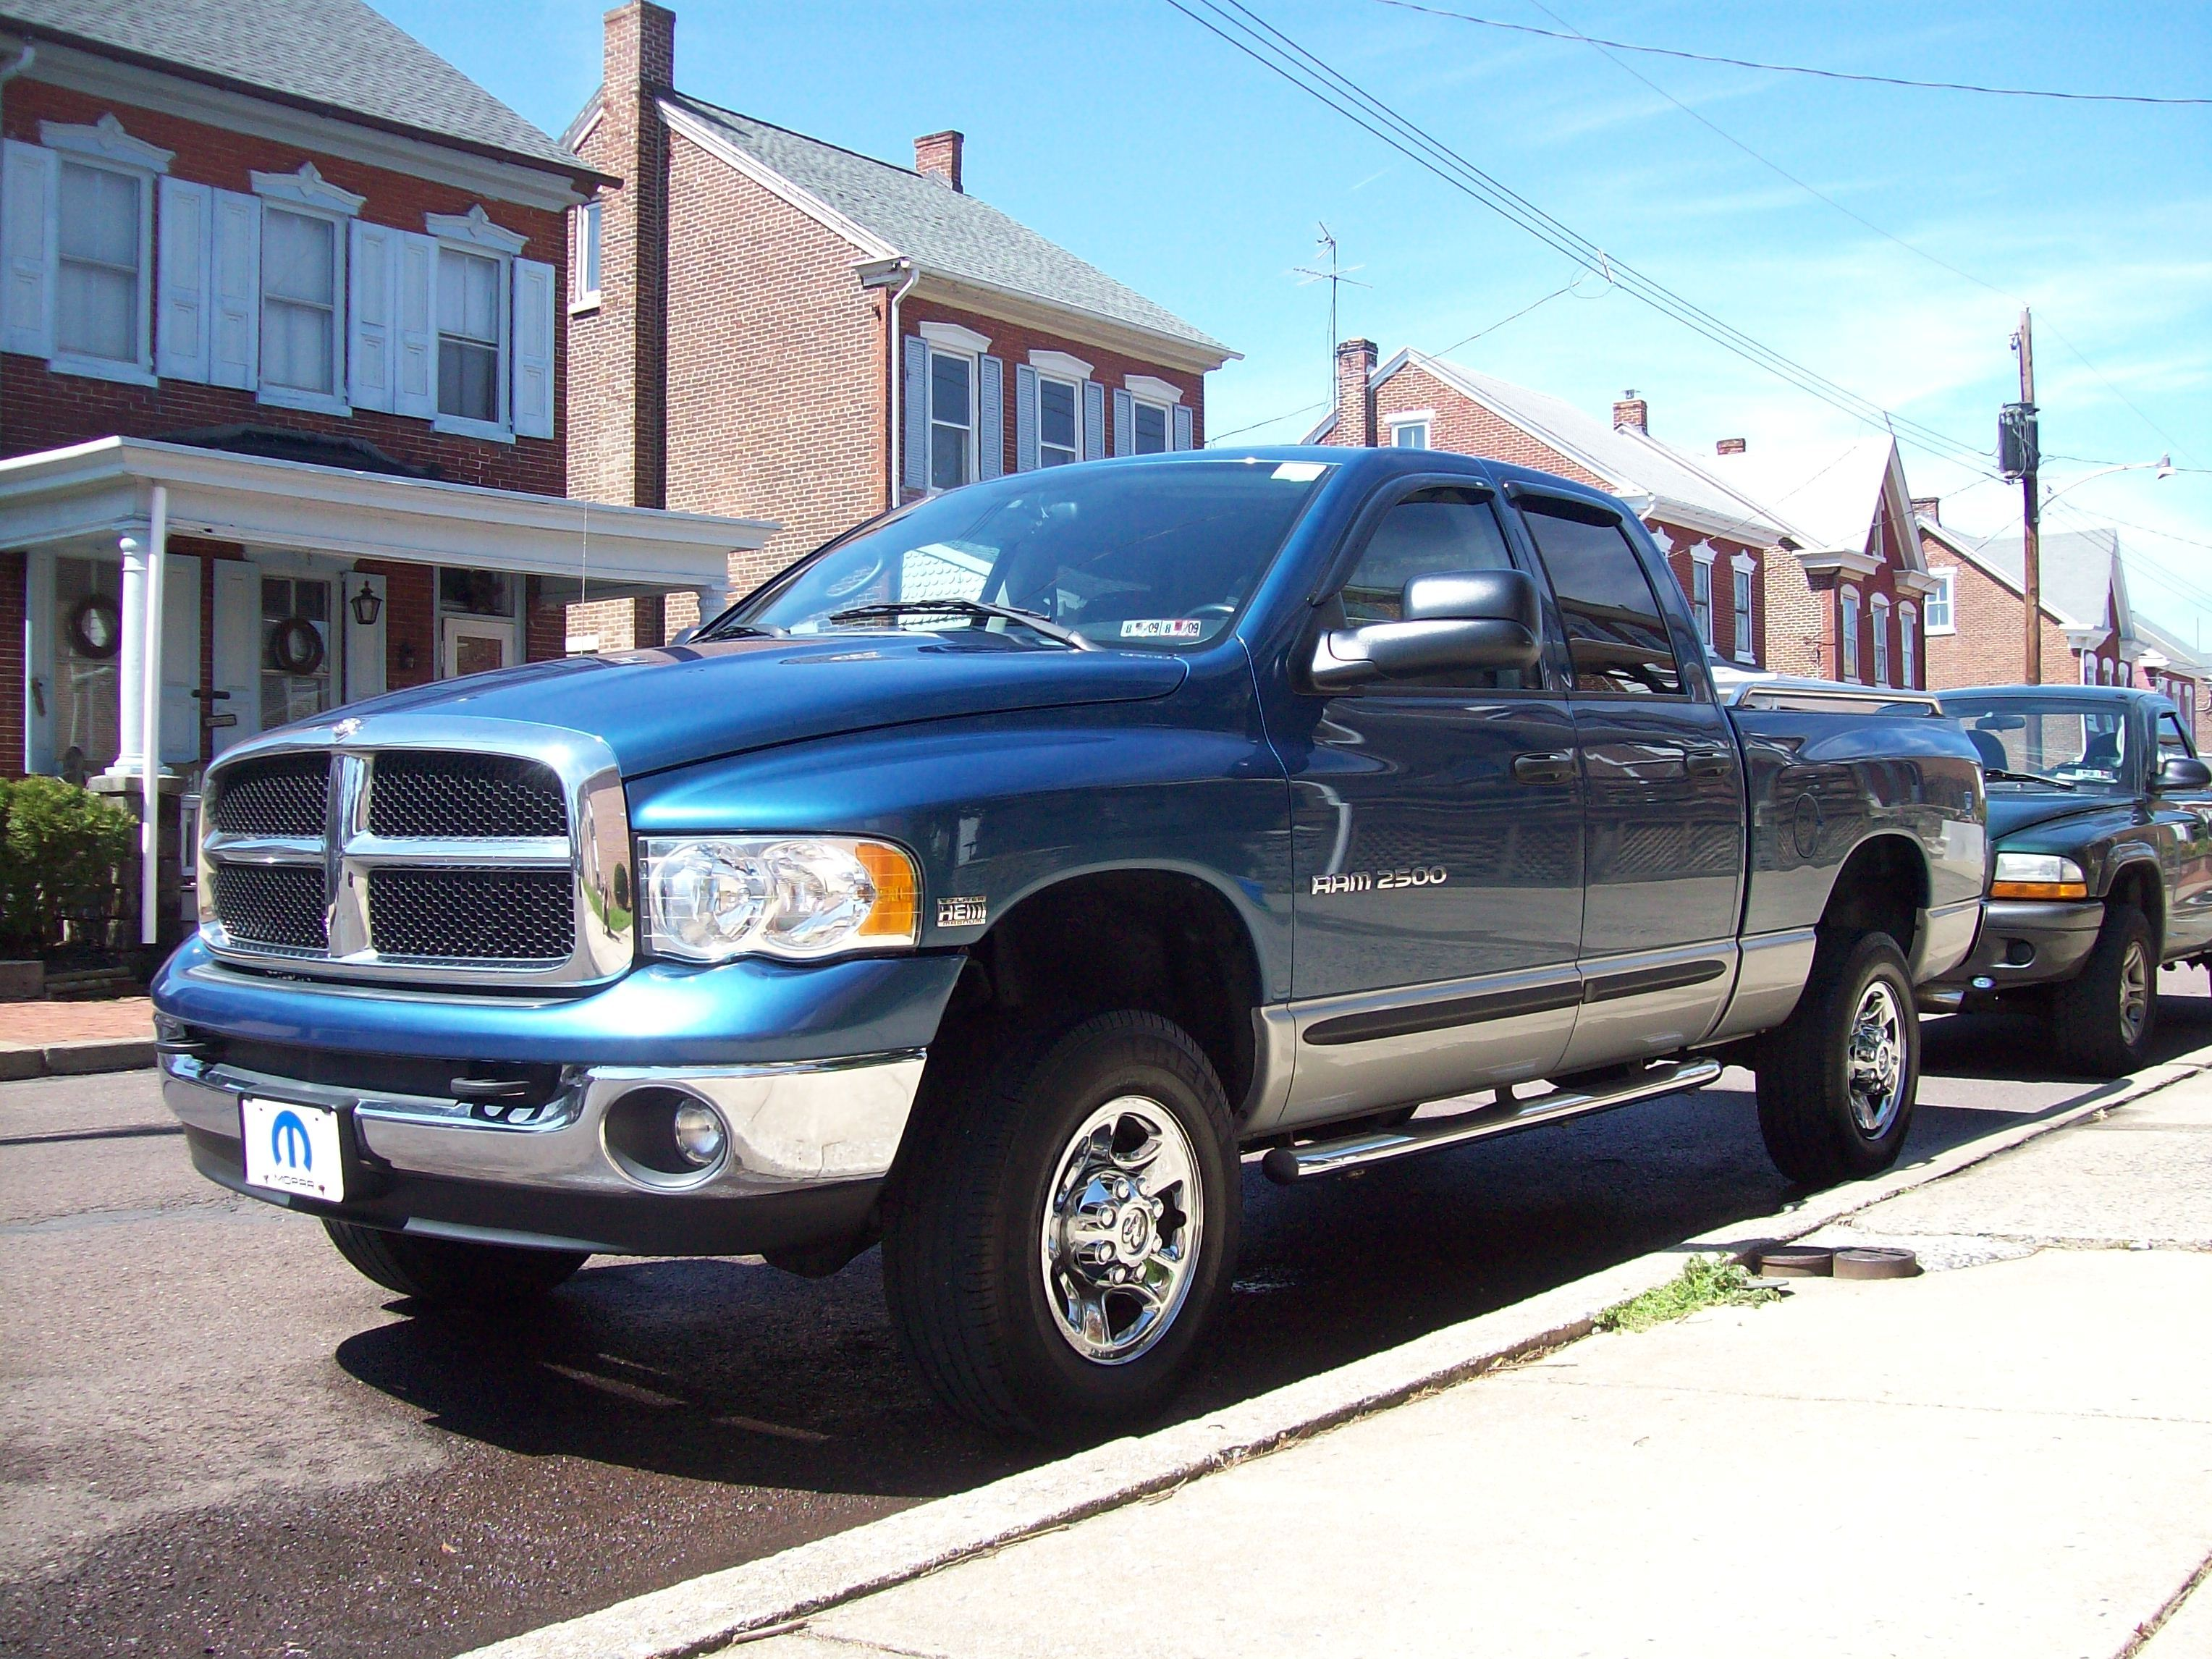 hemishadow 2004 dodge ram 1500 regular cab specs photos modification info at cardomain. Black Bedroom Furniture Sets. Home Design Ideas